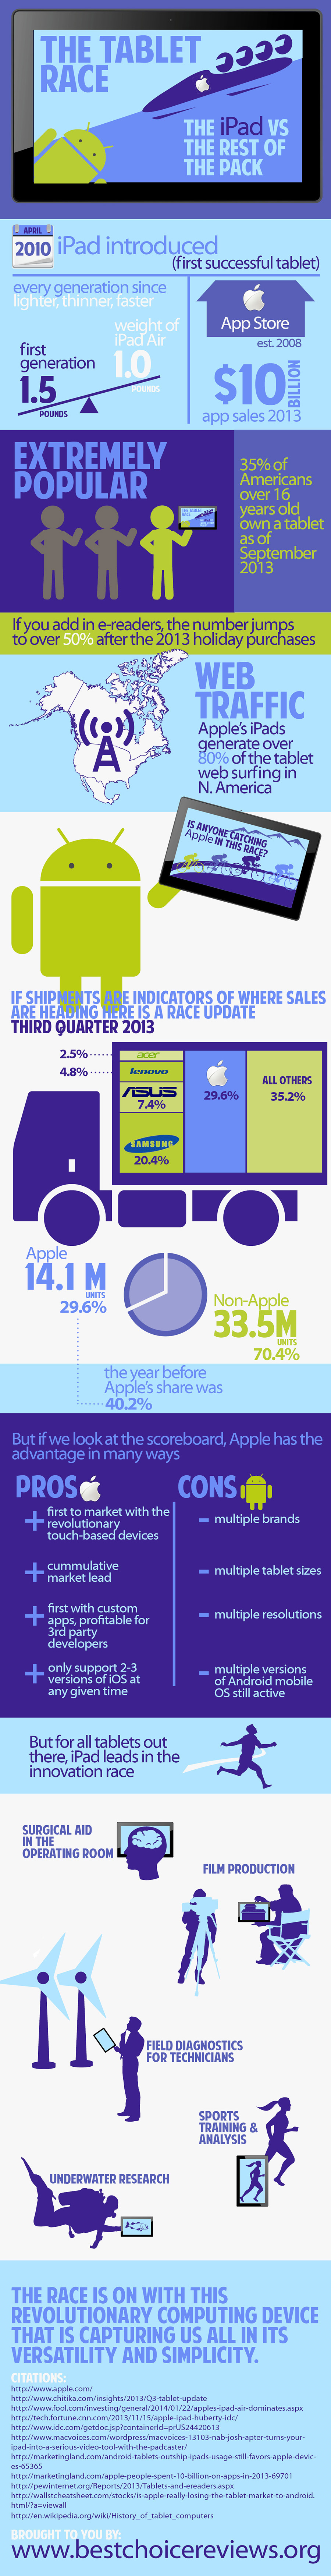 tablet race infographic